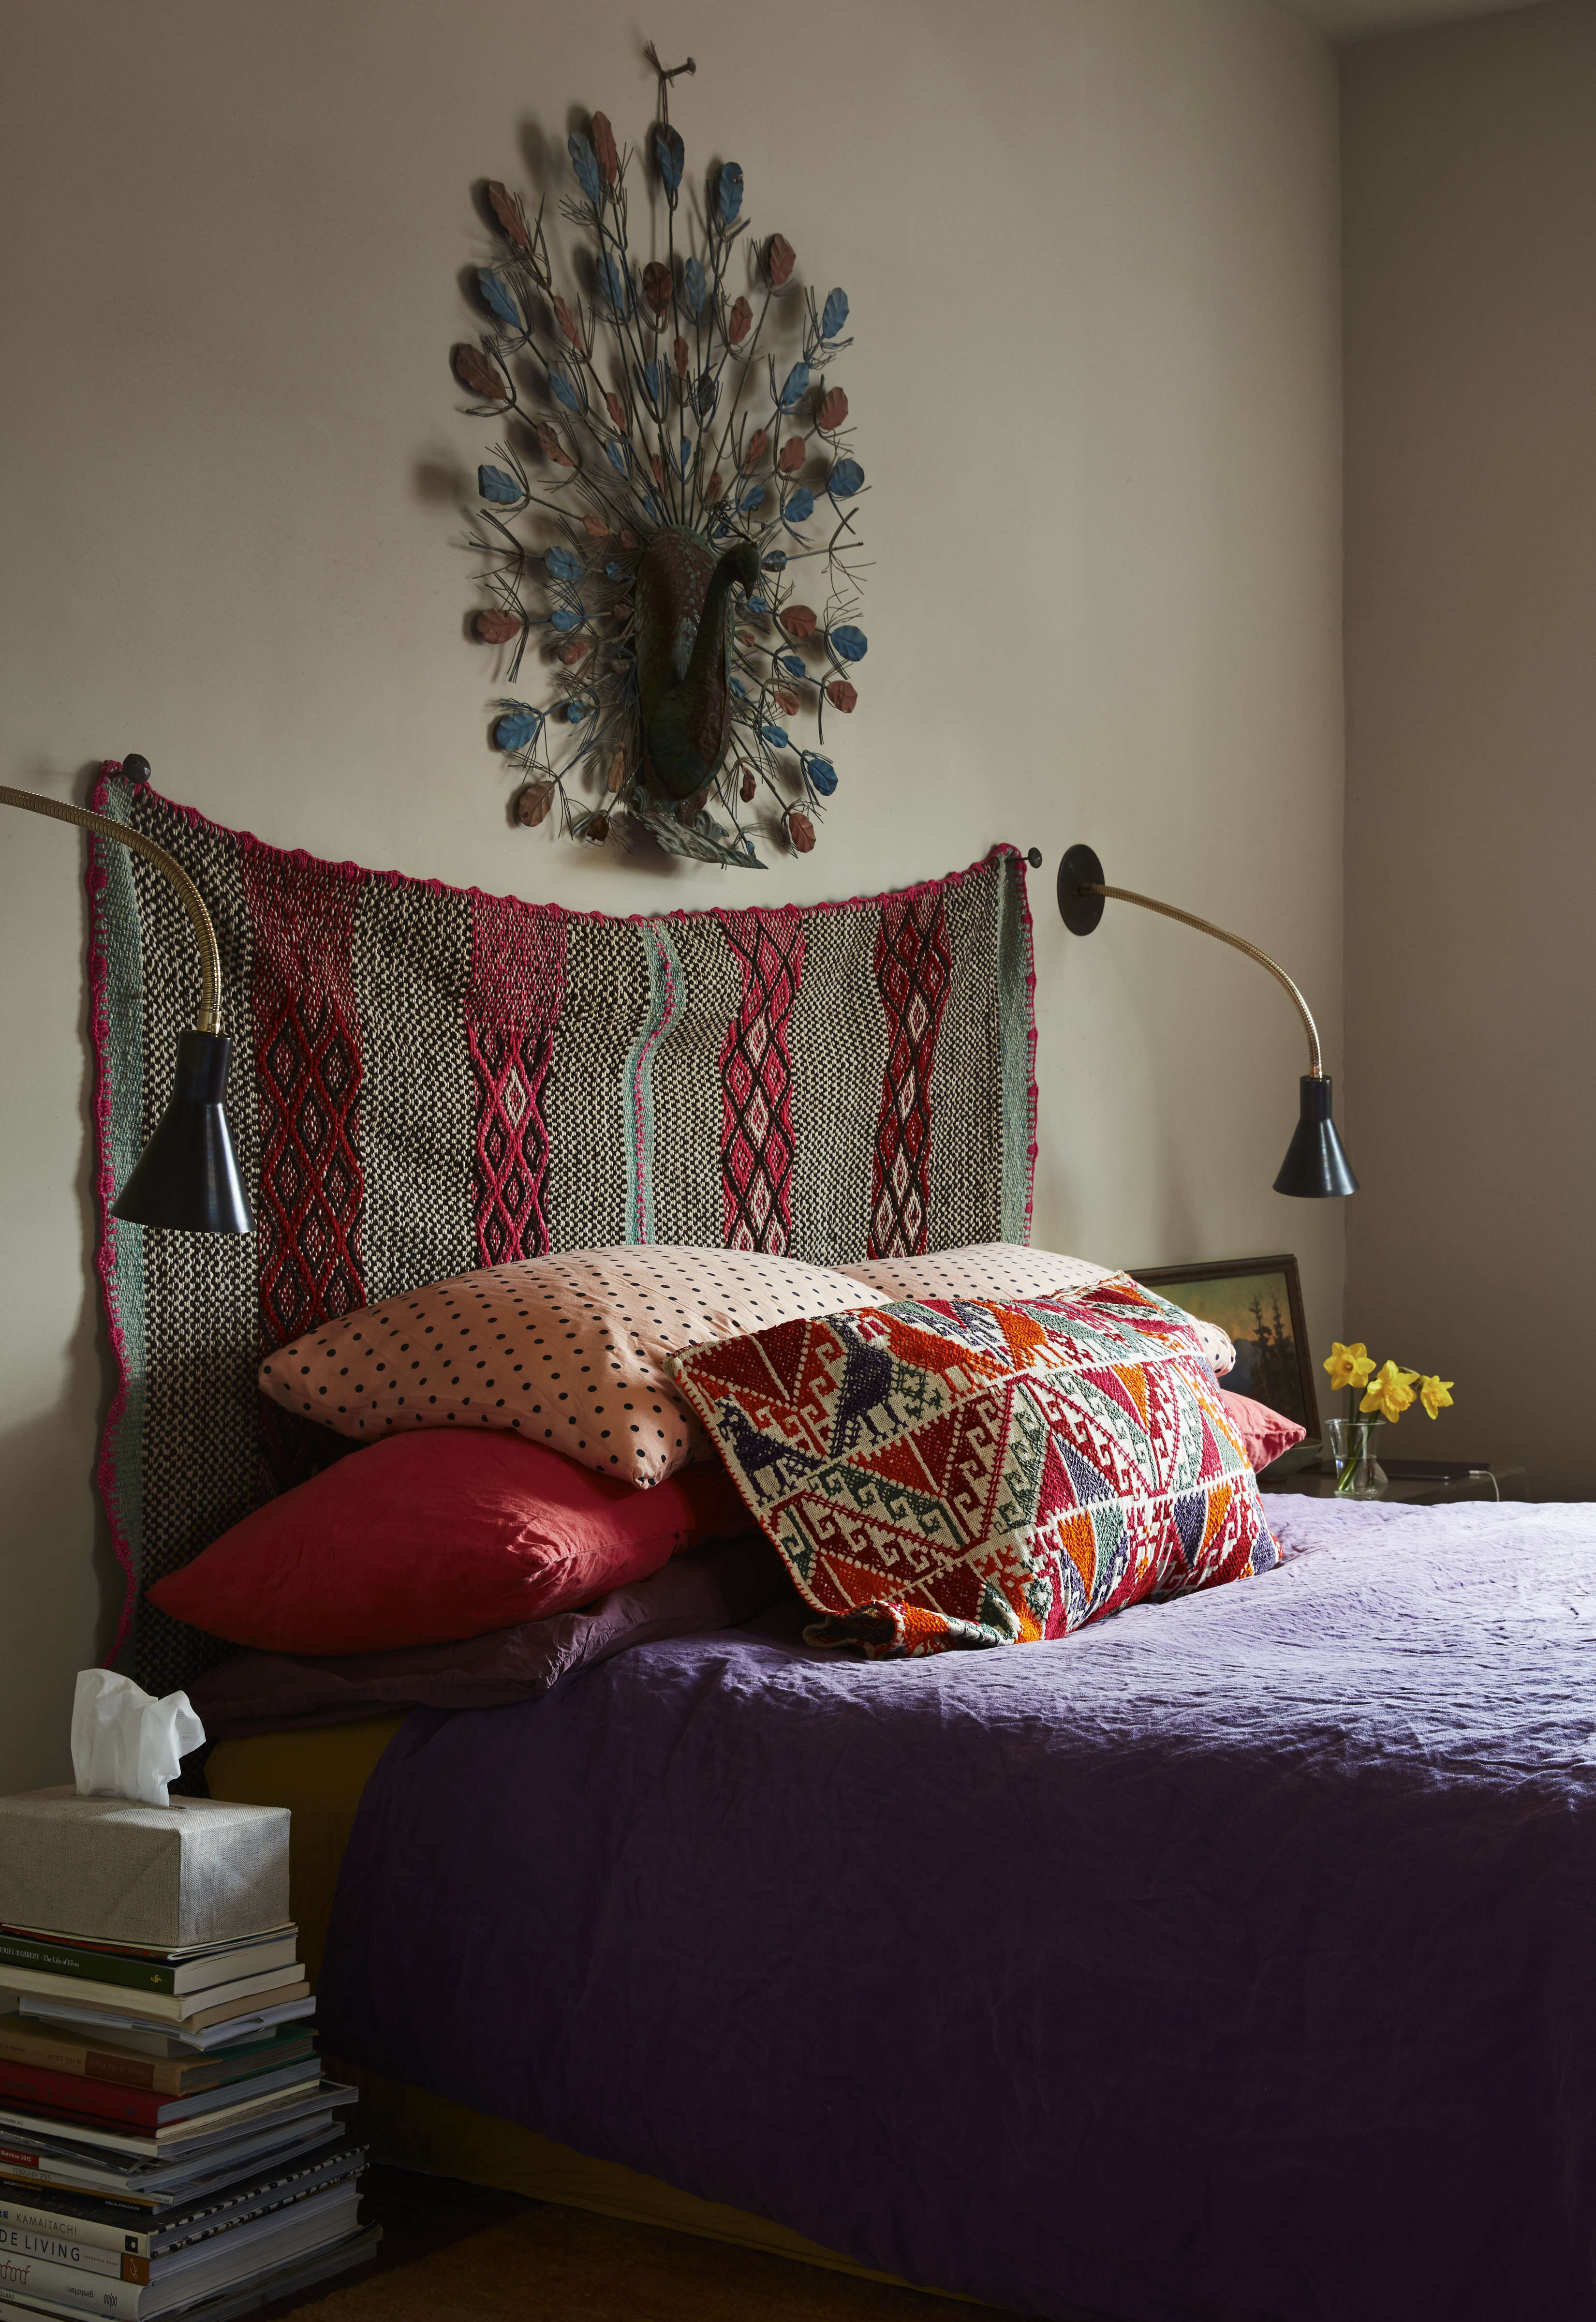 In the master bedroom, Livia hunganAndeanfrazadaas the headboard. The blue metal ostrich over it is one of Livia&#8